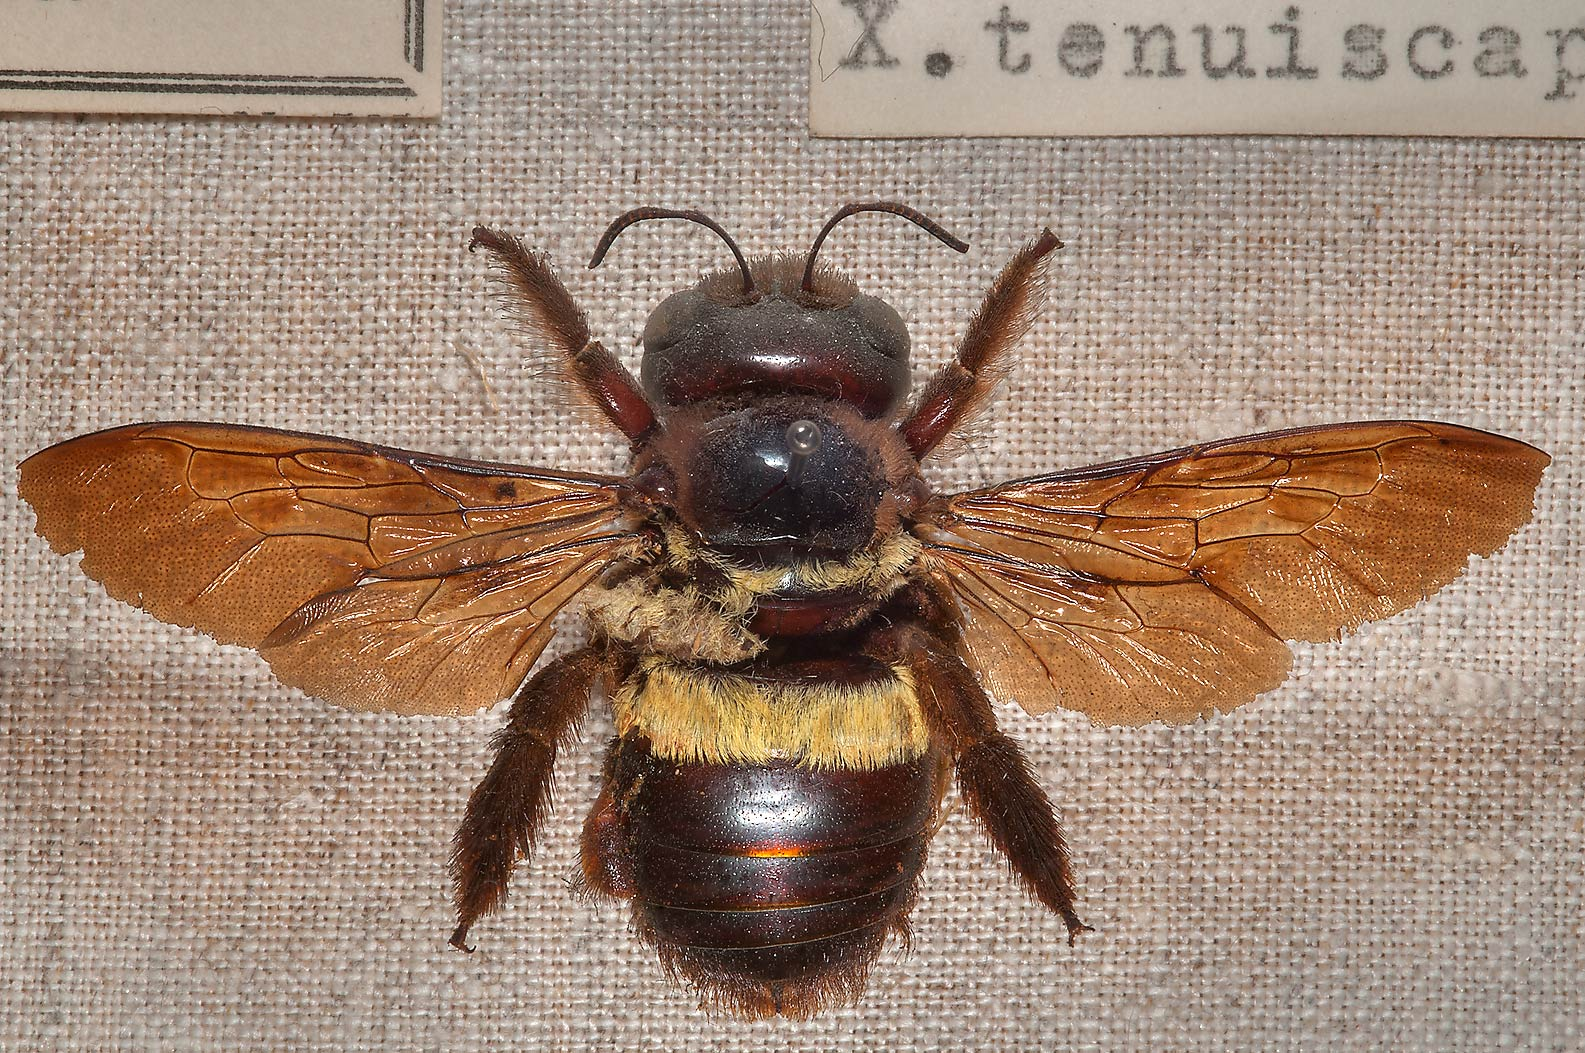 Large brown fly in Zoological Museum. St.Petersburg, Russia